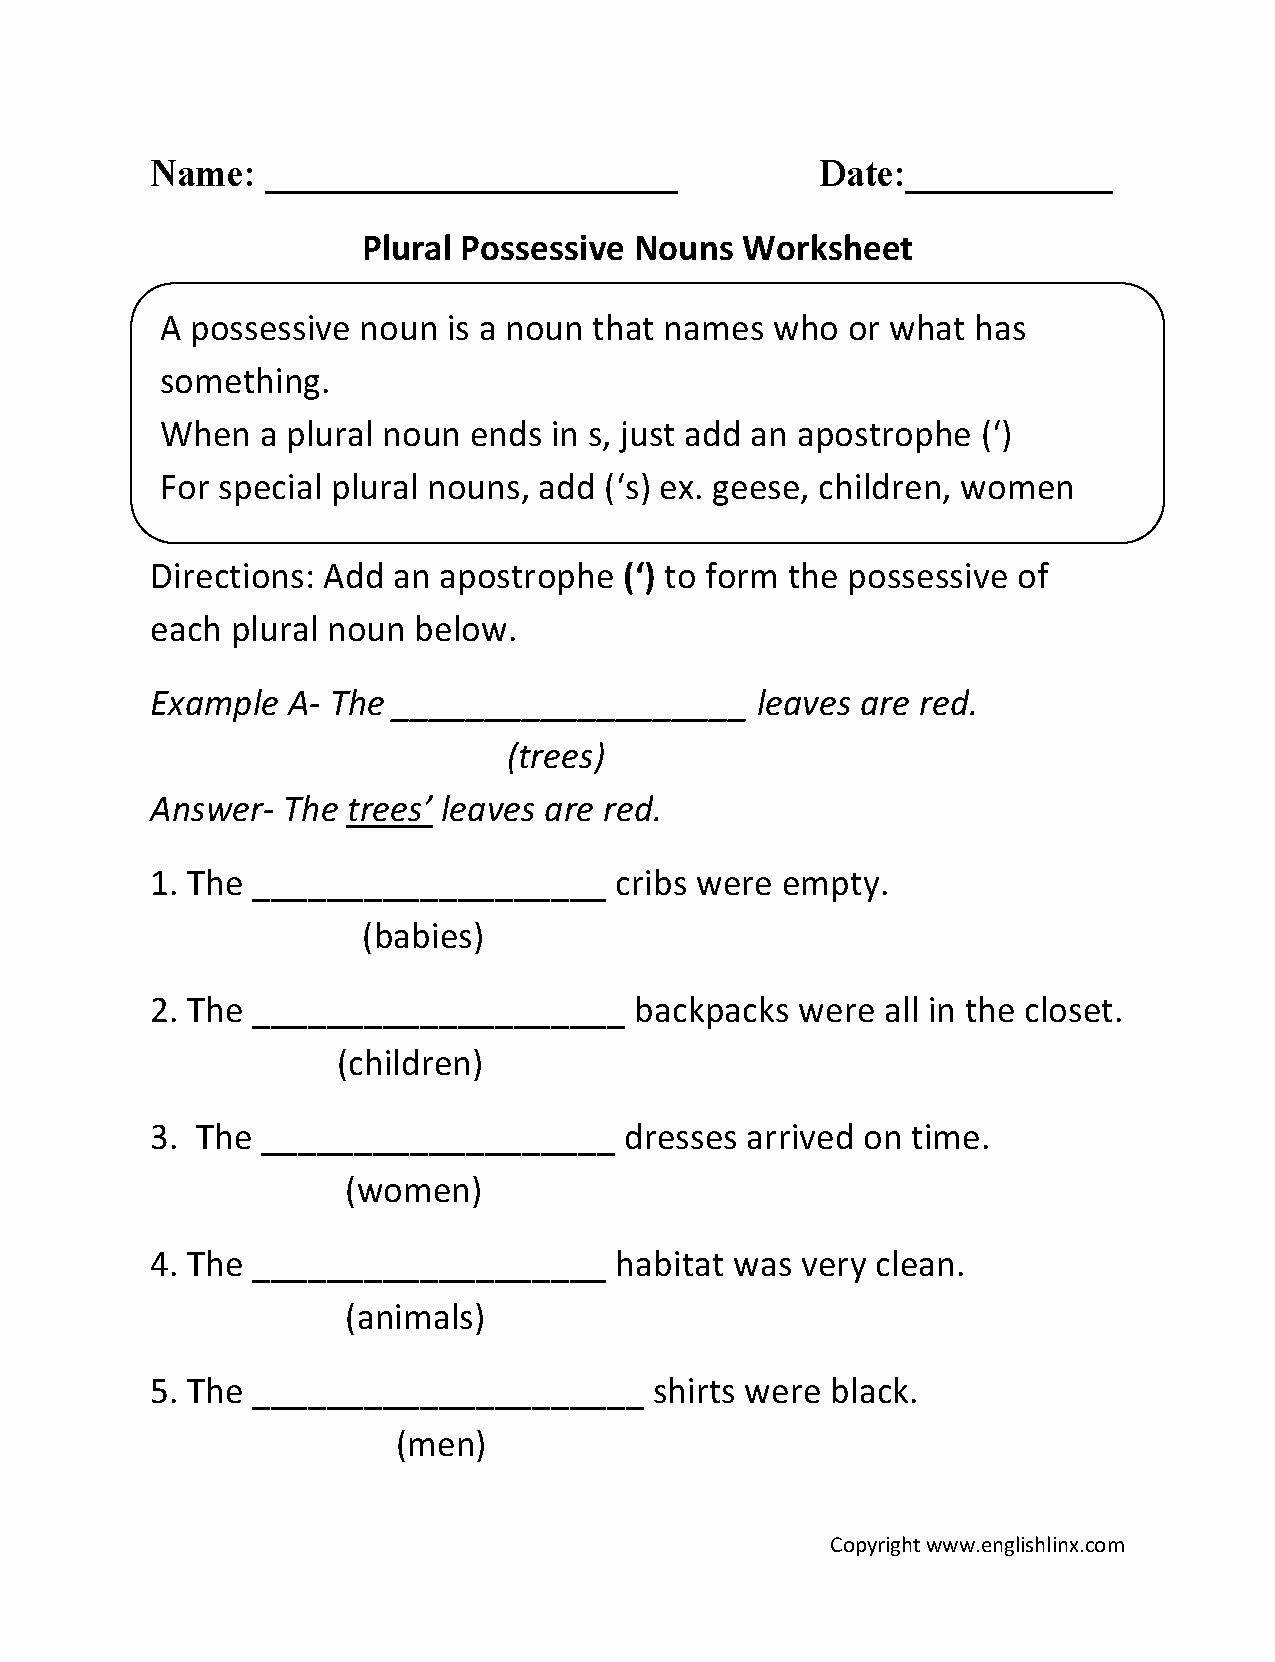 Singular Possessive Nouns Worksheet Luxury Plural Noun